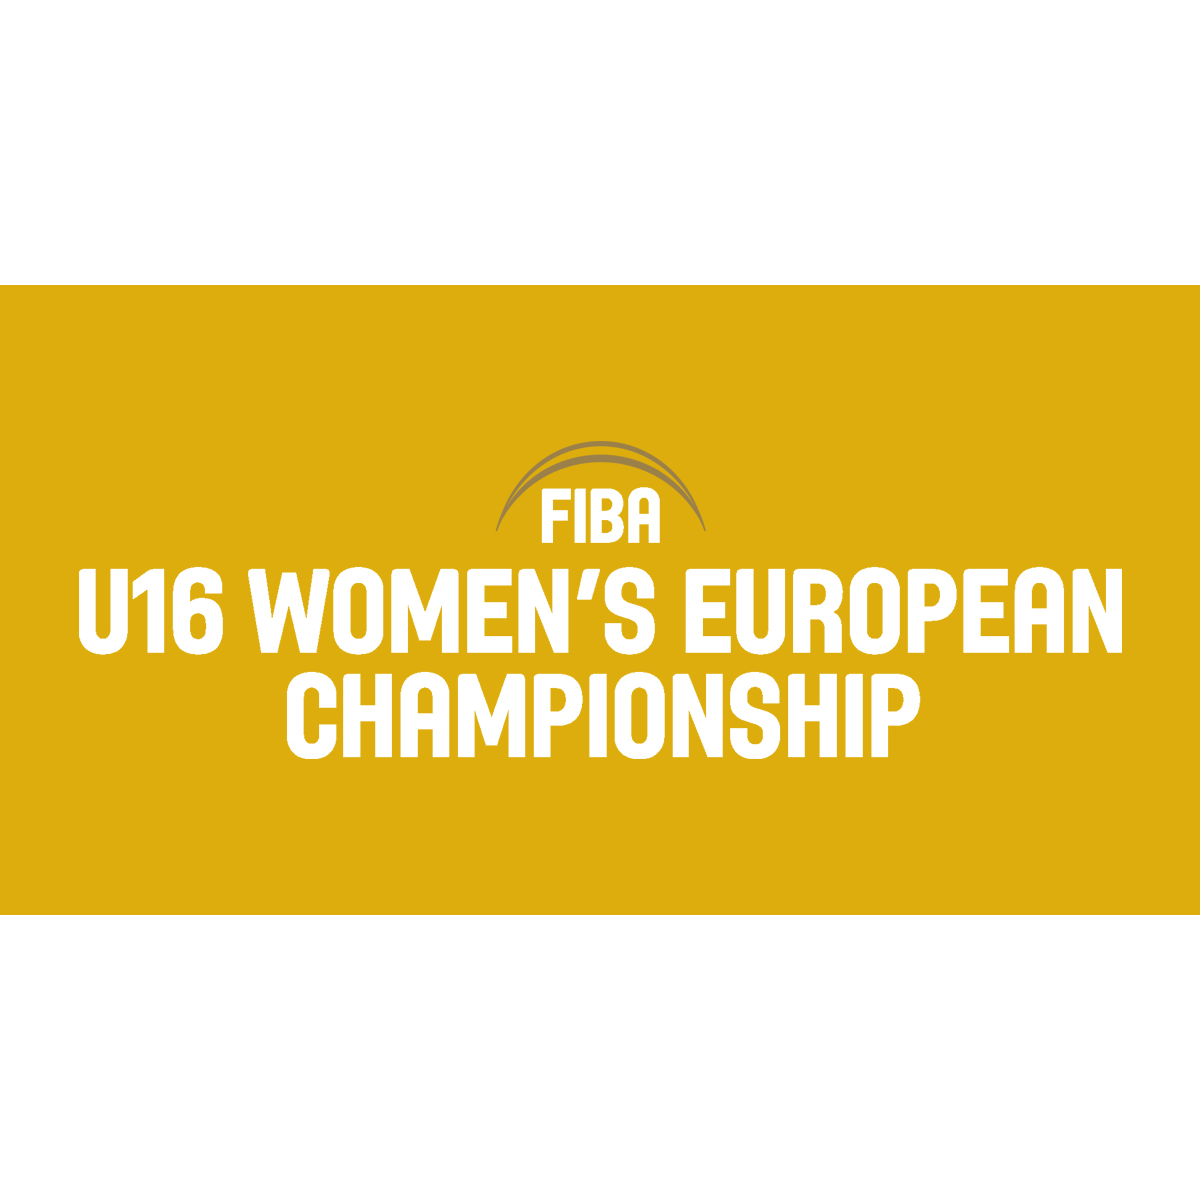 2018 FIBA U16 Women's European Basketball Championship